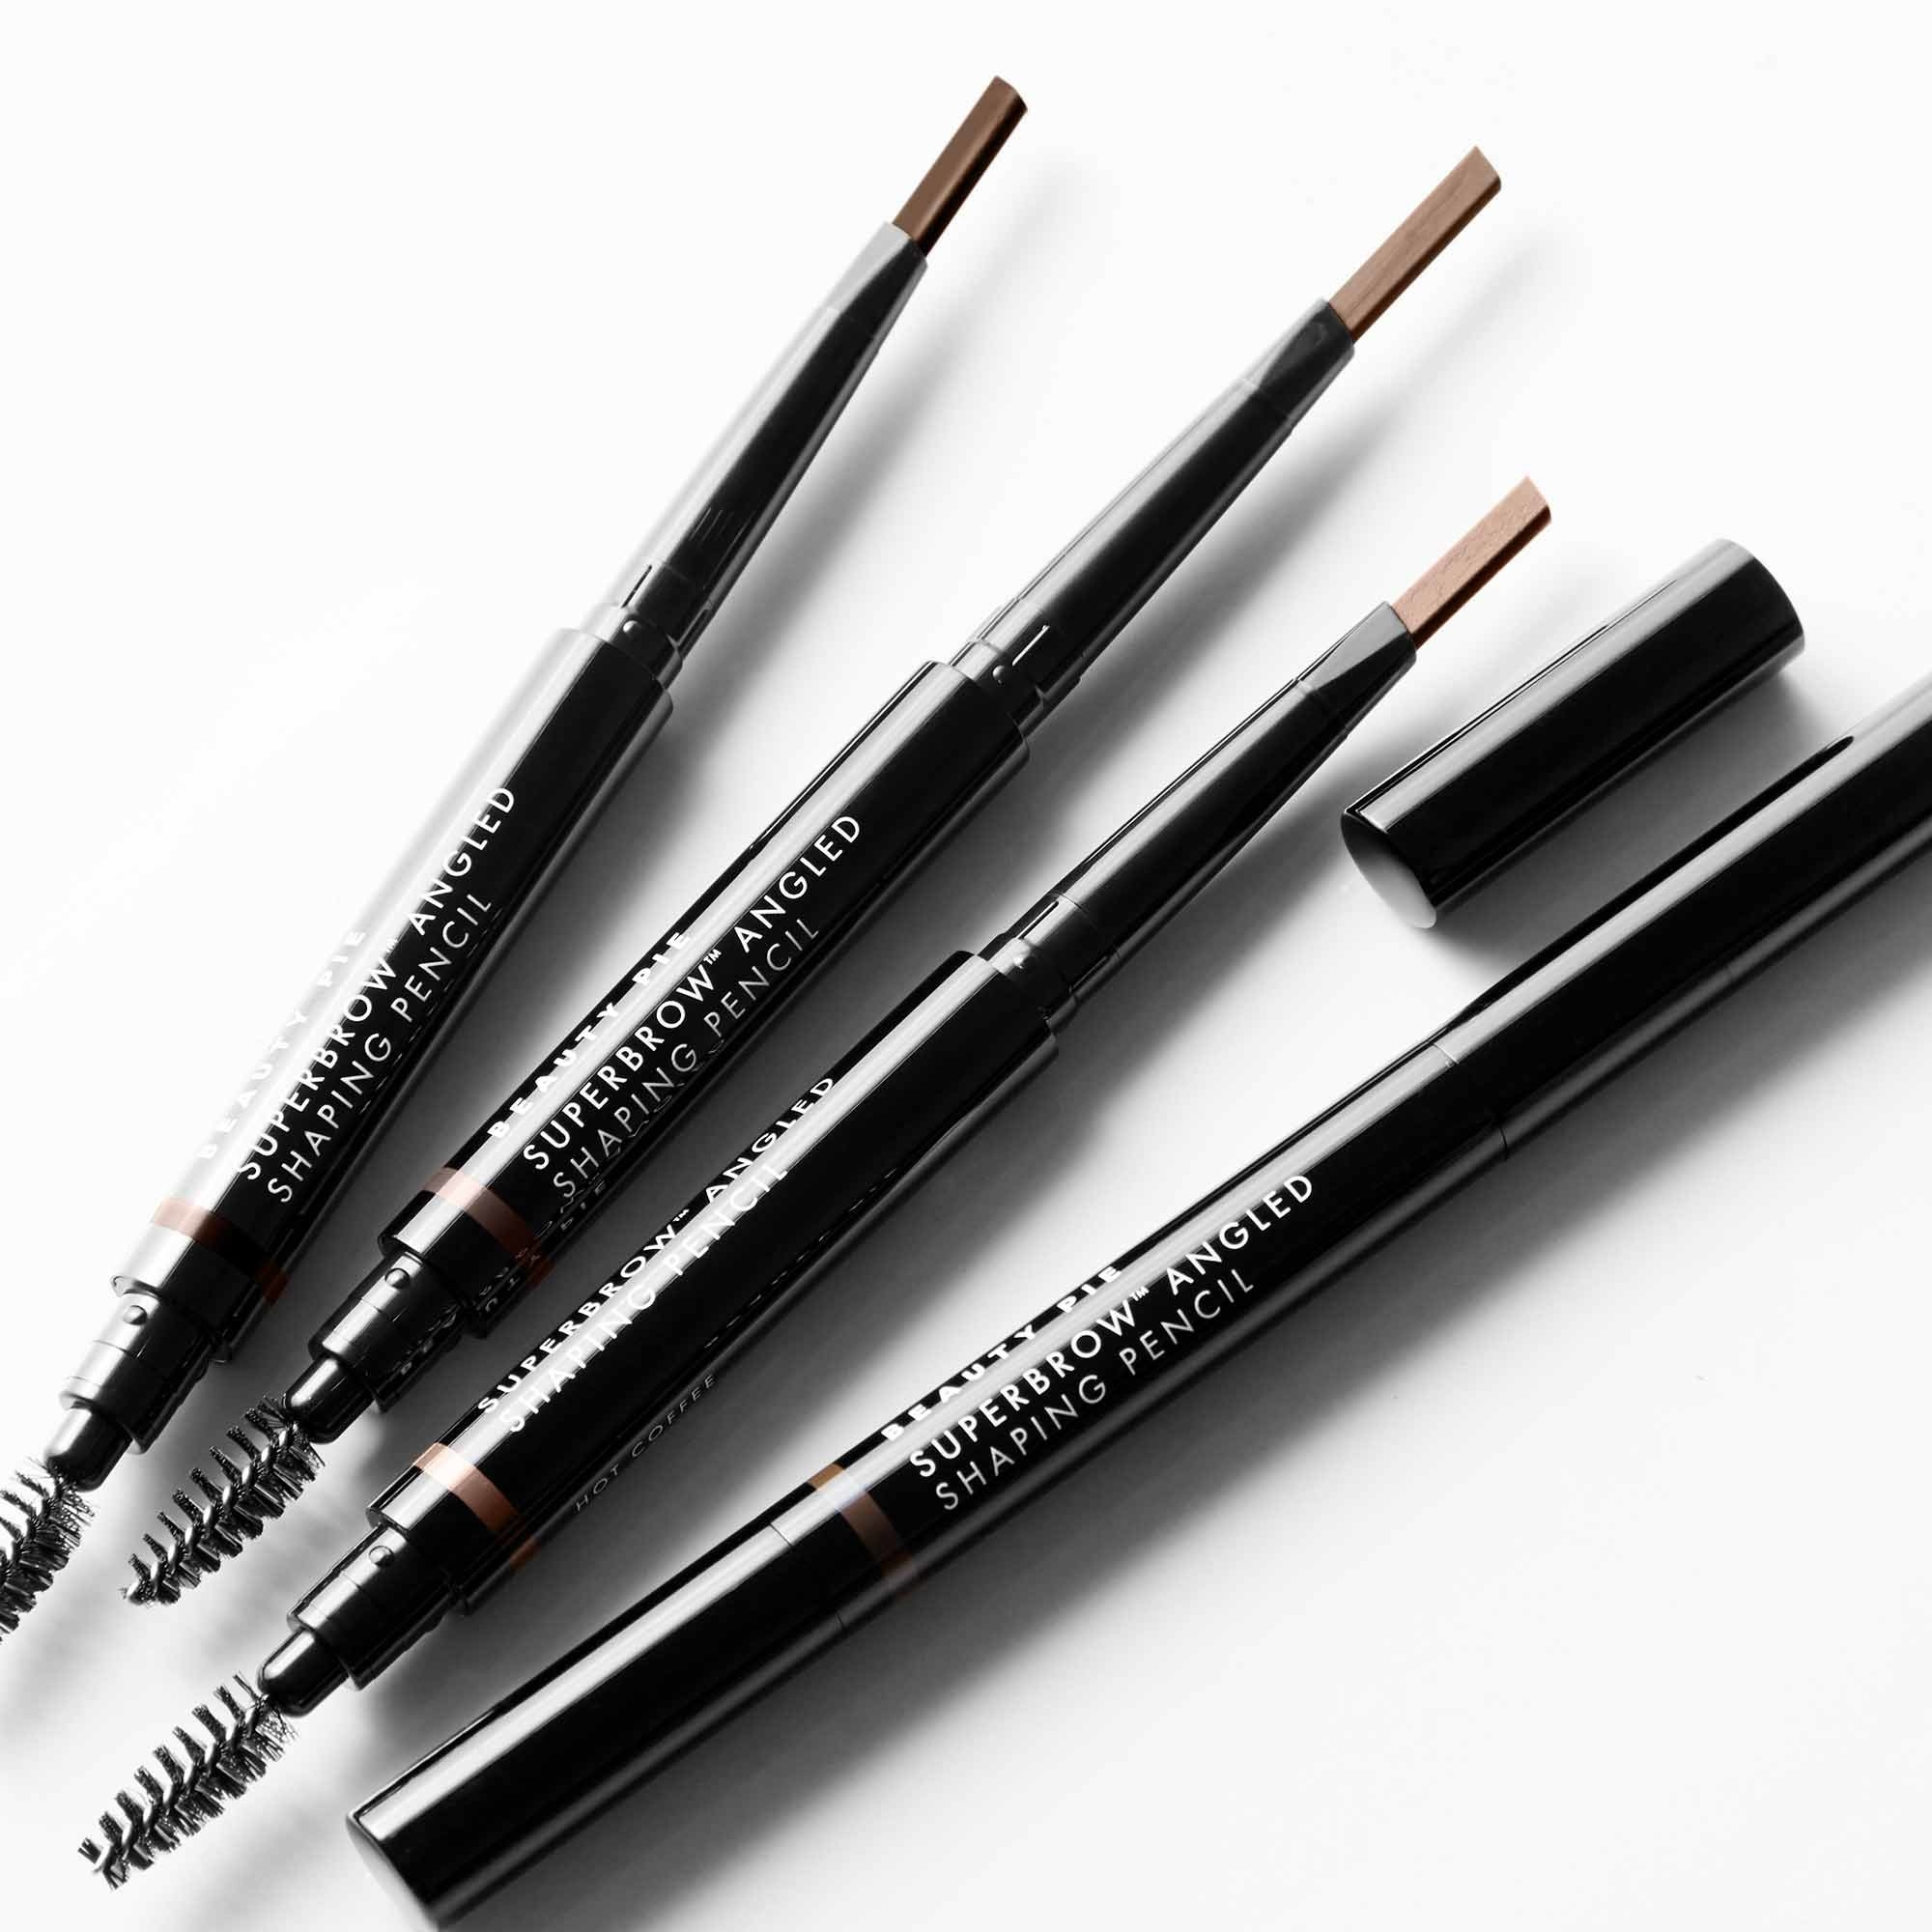 FourSuperbrow™ Angled Shaping Pencils with tip and spoolie